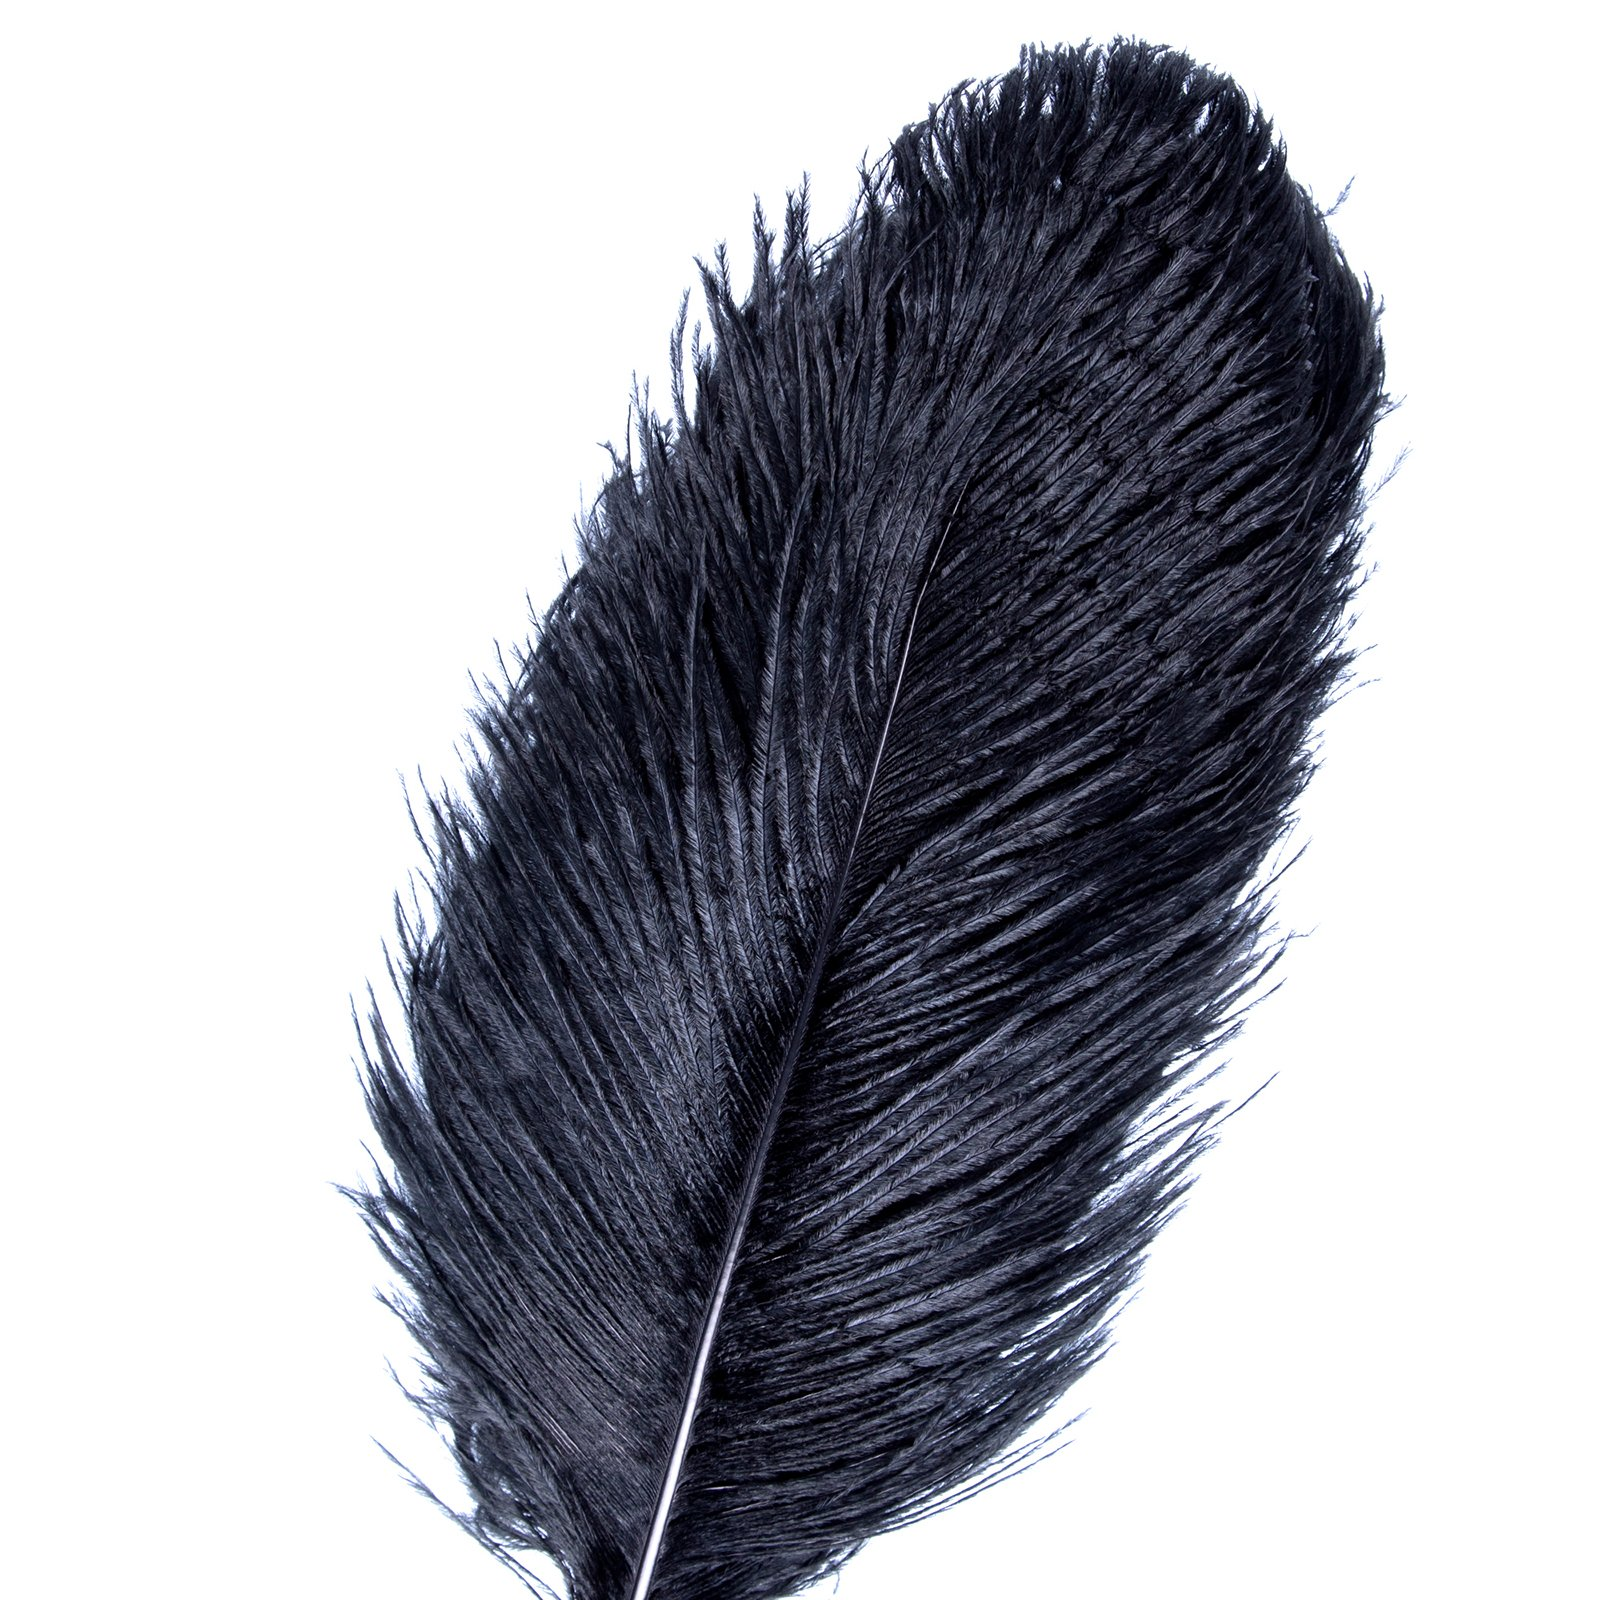 AWAYTR Natural 18-20 inch(45-50cm) Ostrich Feathers Plume for Wedding Centerpieces Home Decoration Black 50Pcs